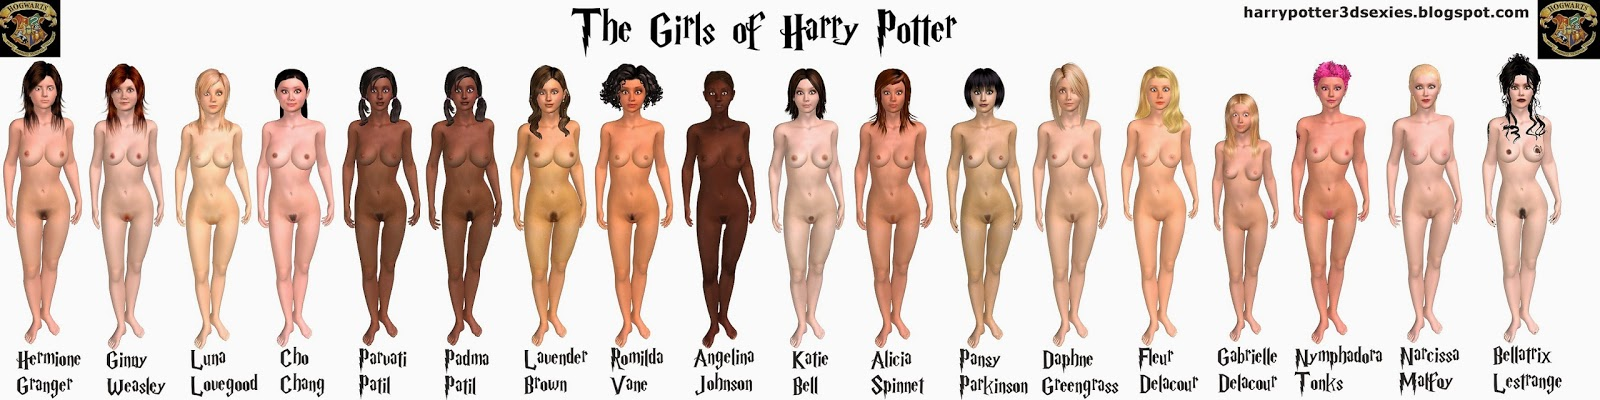 nude harry potter girls